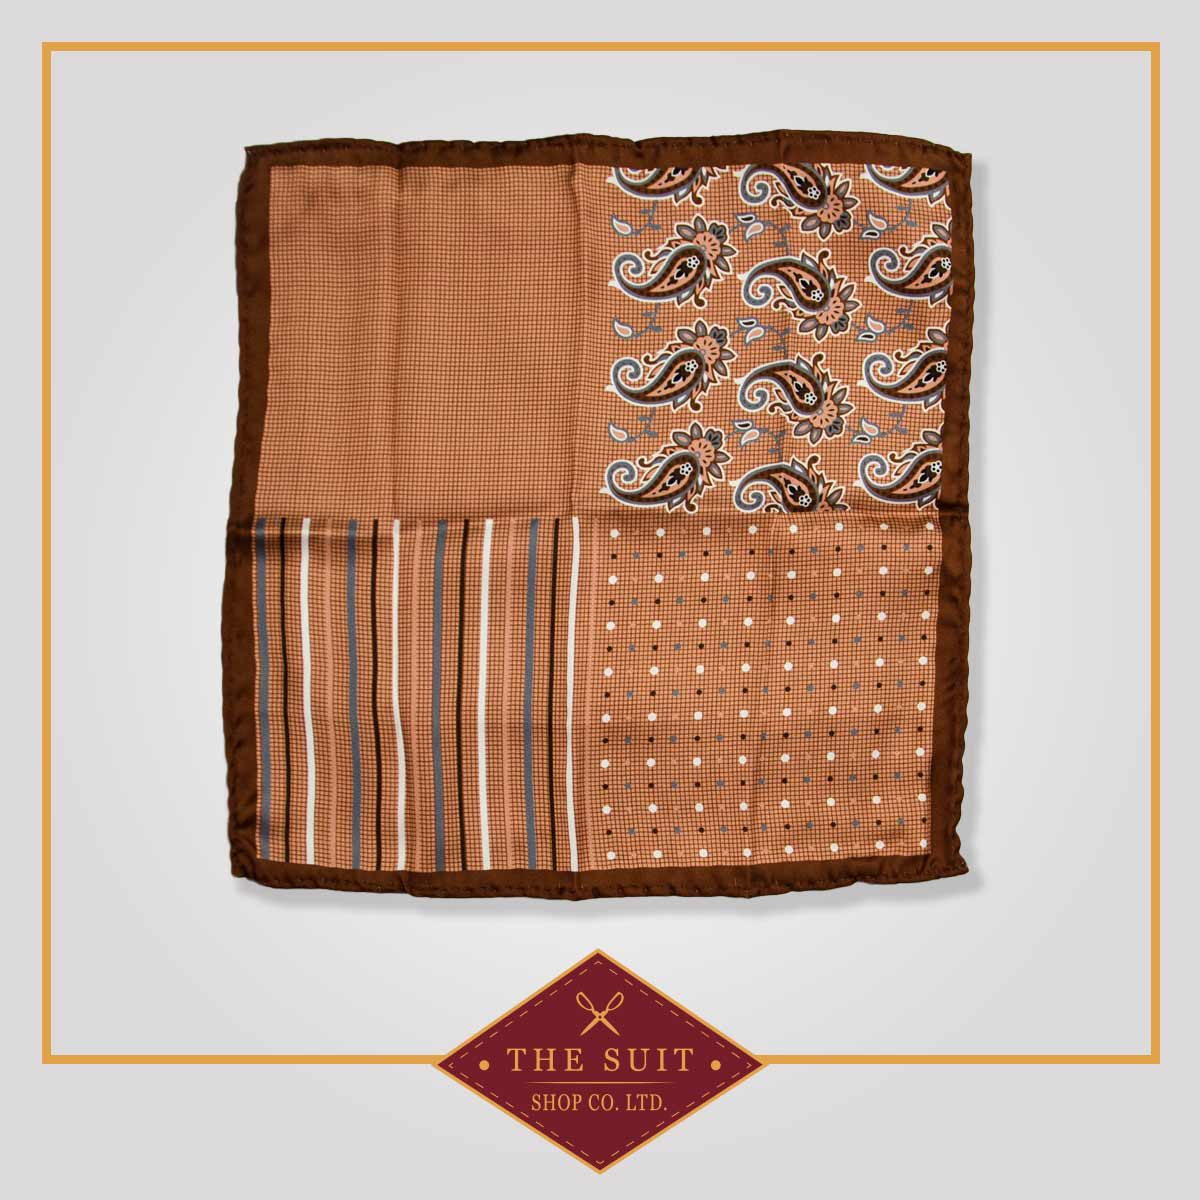 Coffee Bean and Leather Patterned Pocket Square